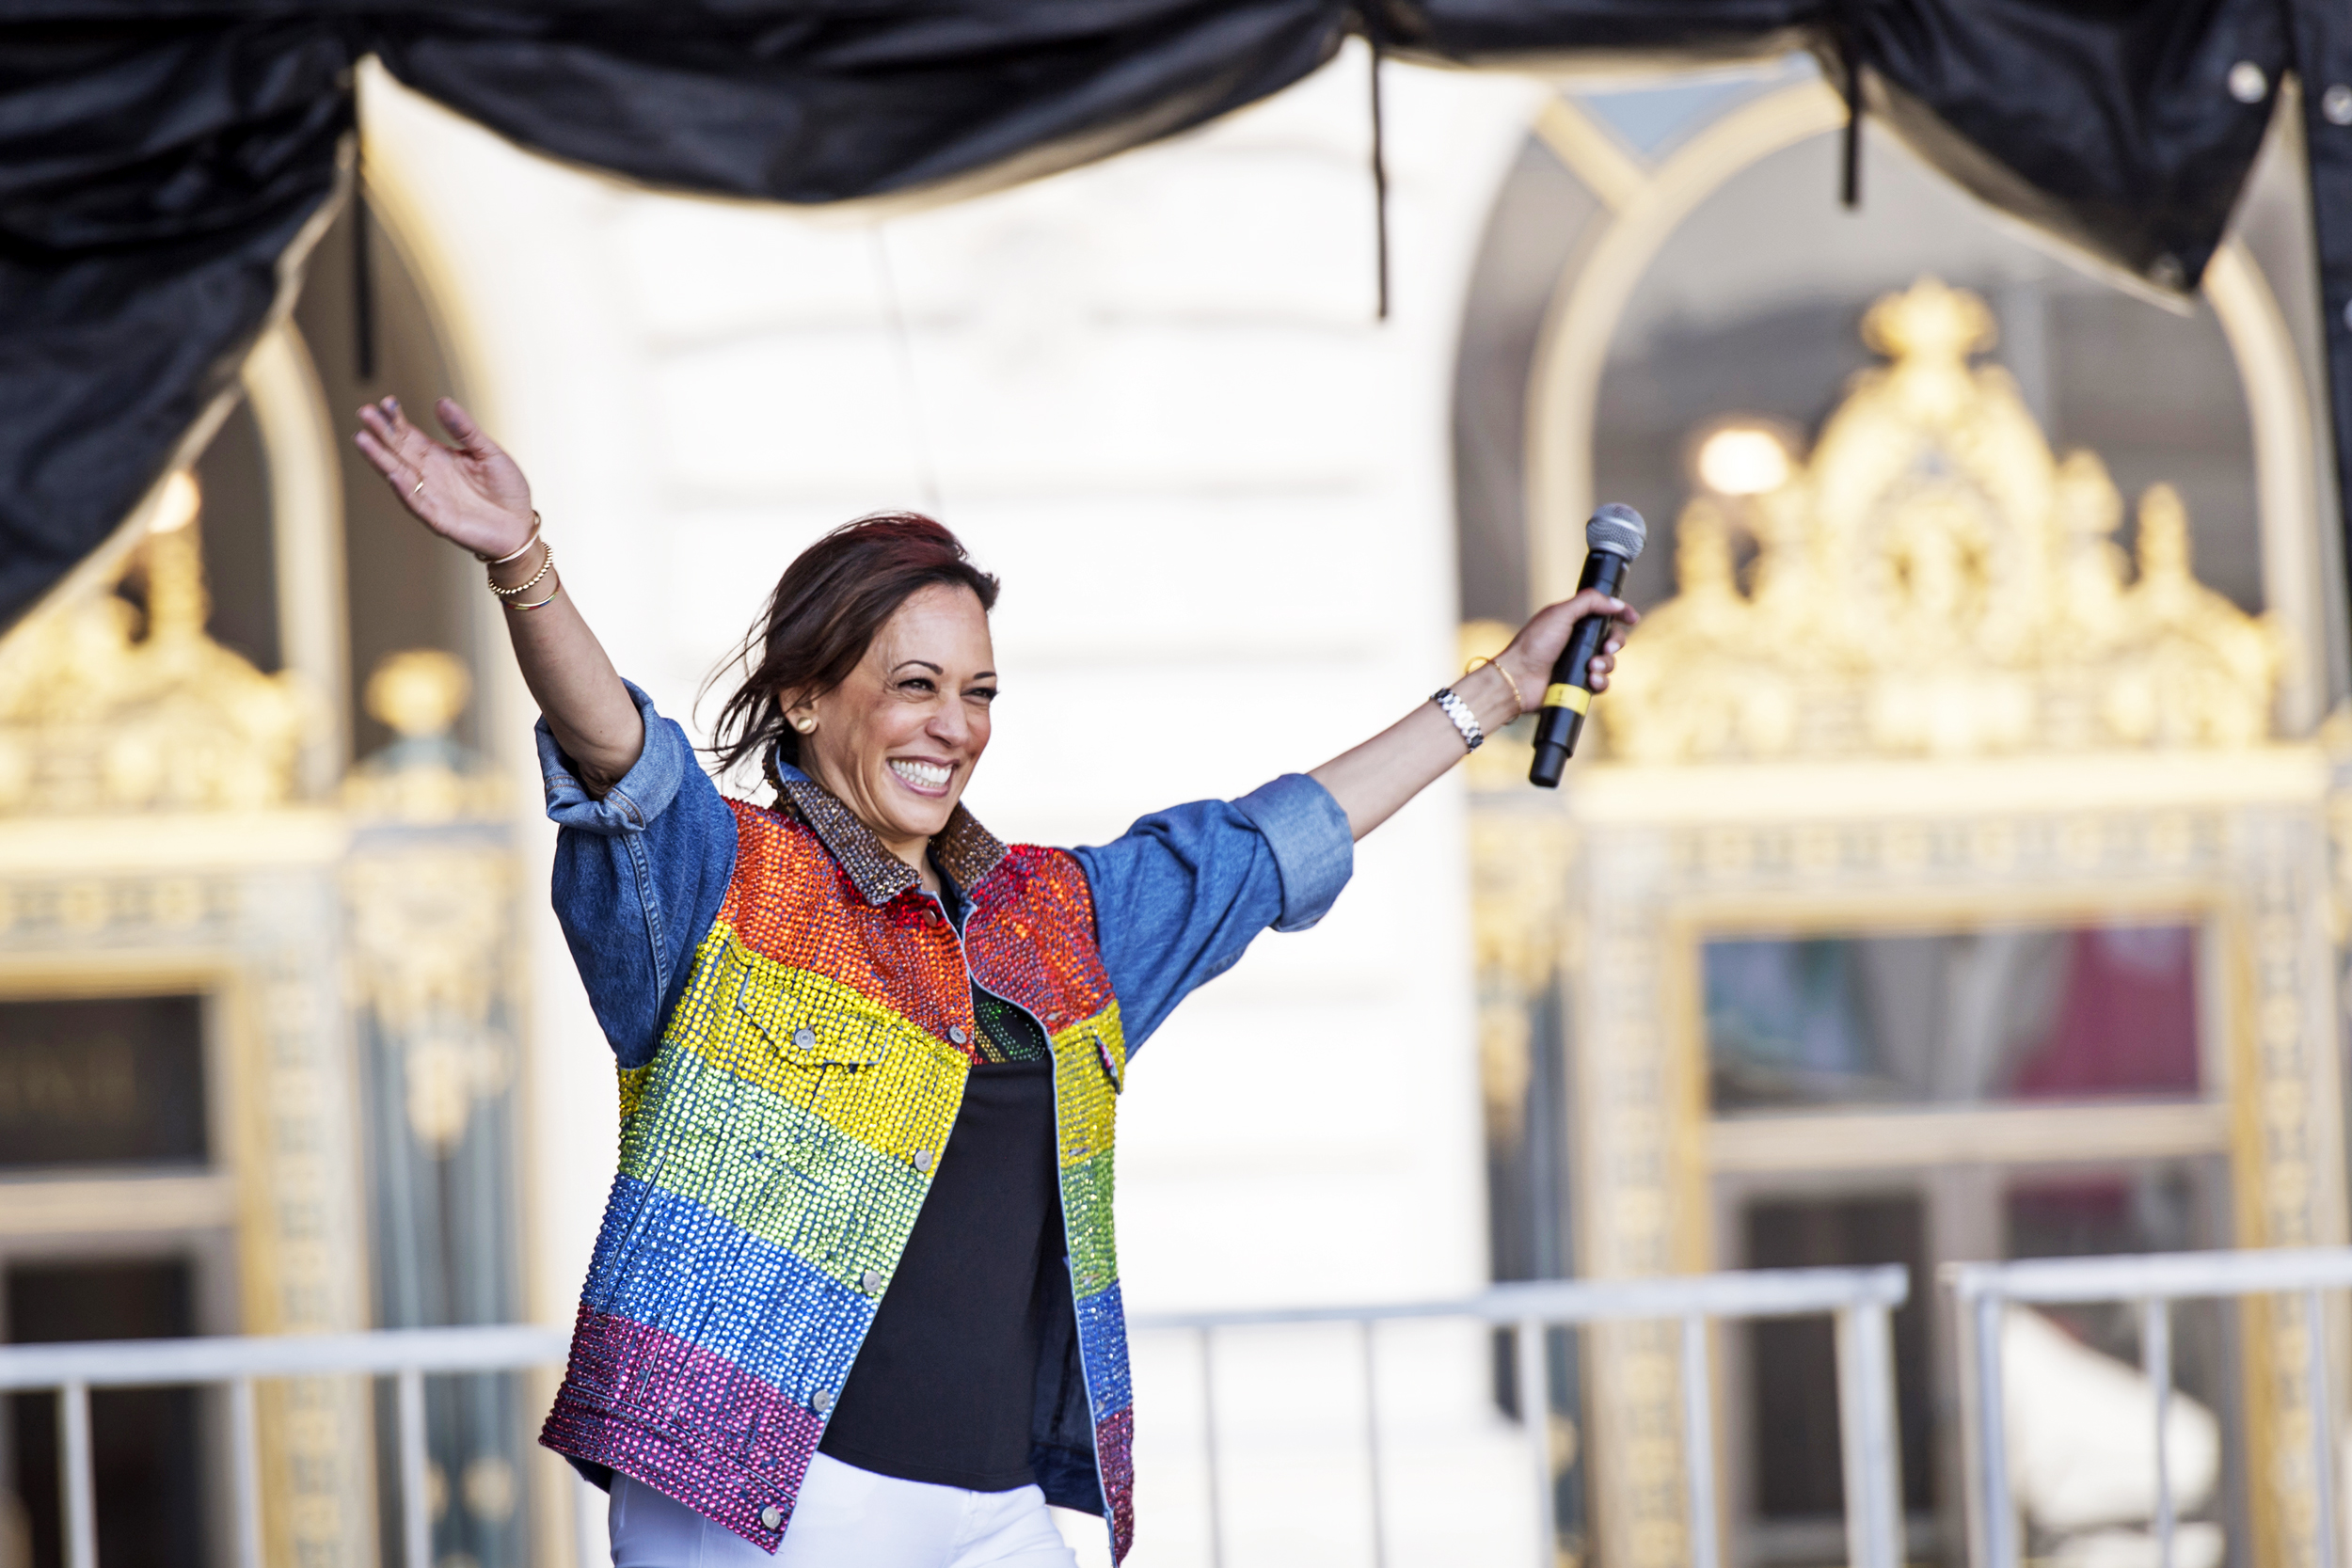 Kamala Harris Brings Pro Lgbtq Record To Biden Ticket